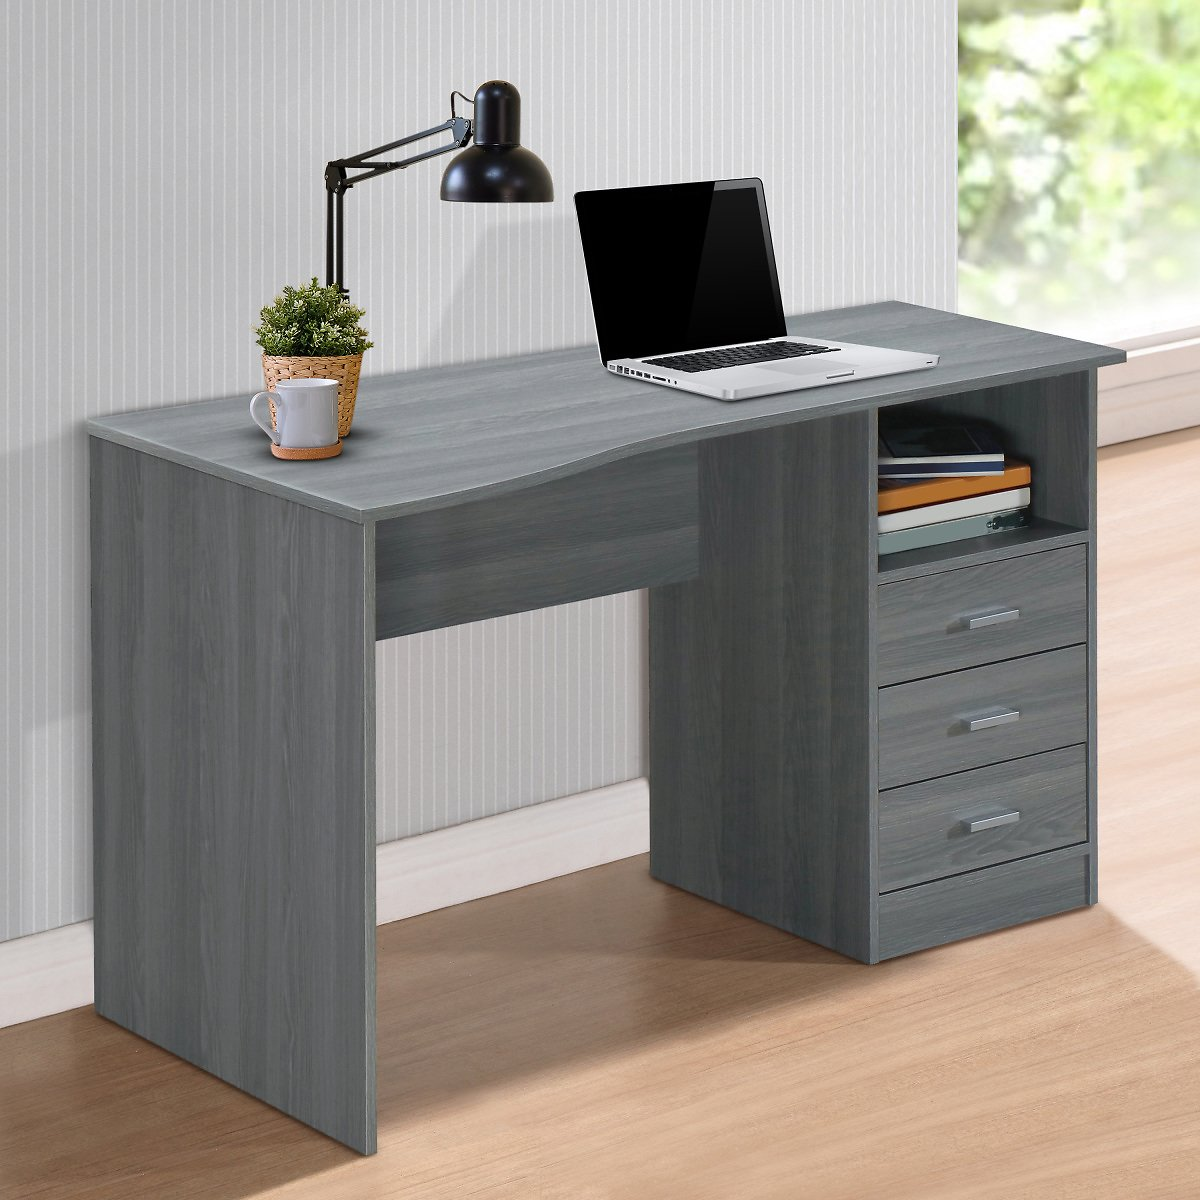 Techni Mobili Classic Computer Desk with Drawers, Grey